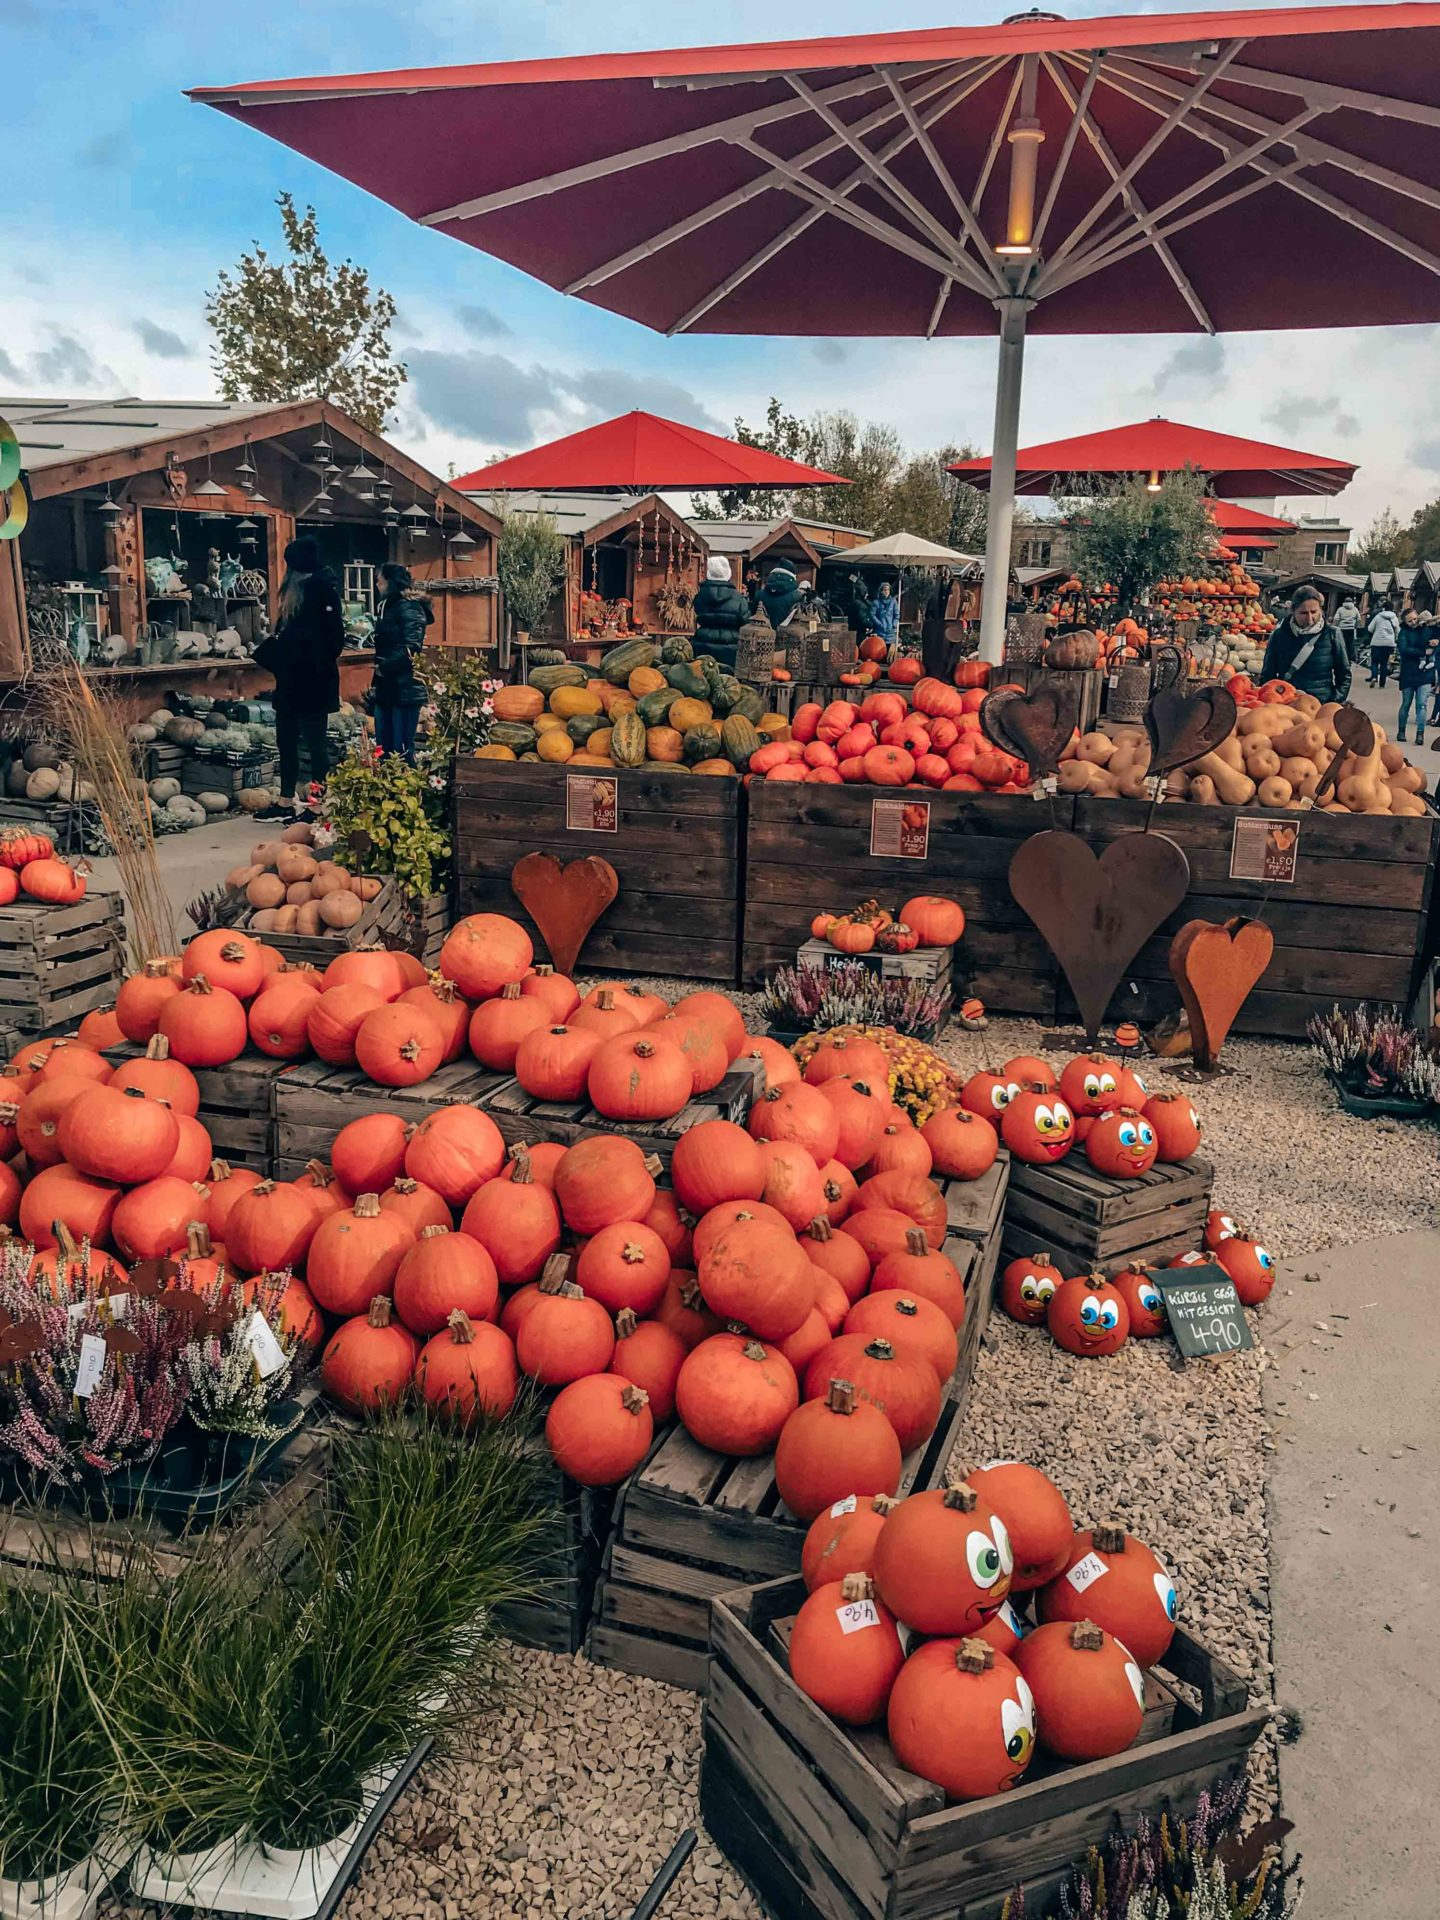 Pumpkin market near Cologne